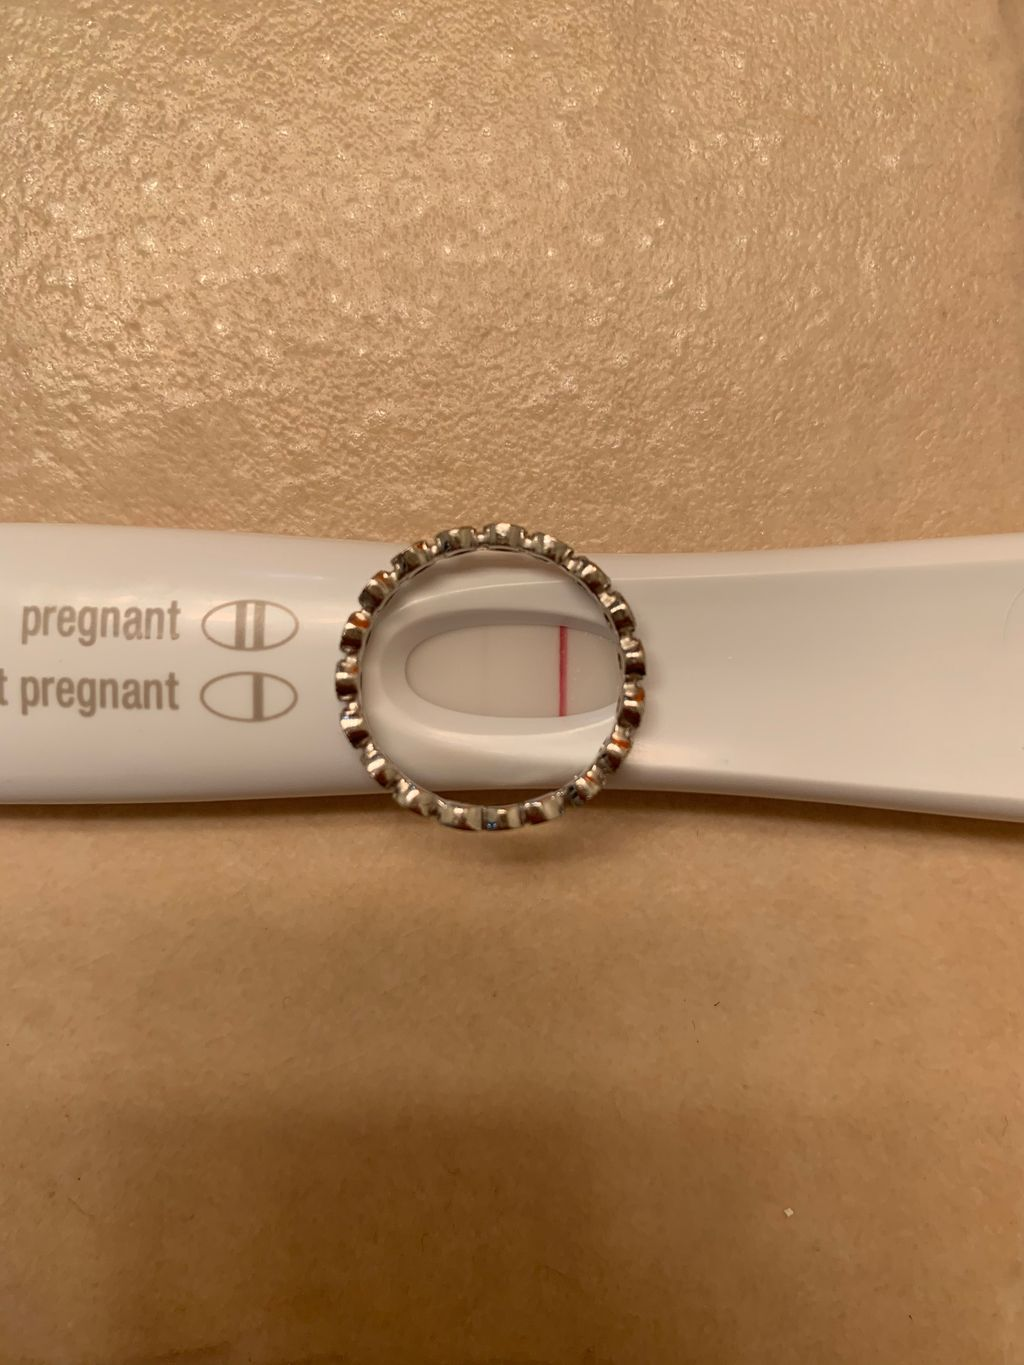 Feeling flu like before BFP? - Trying To Conceive   Forums   What ...